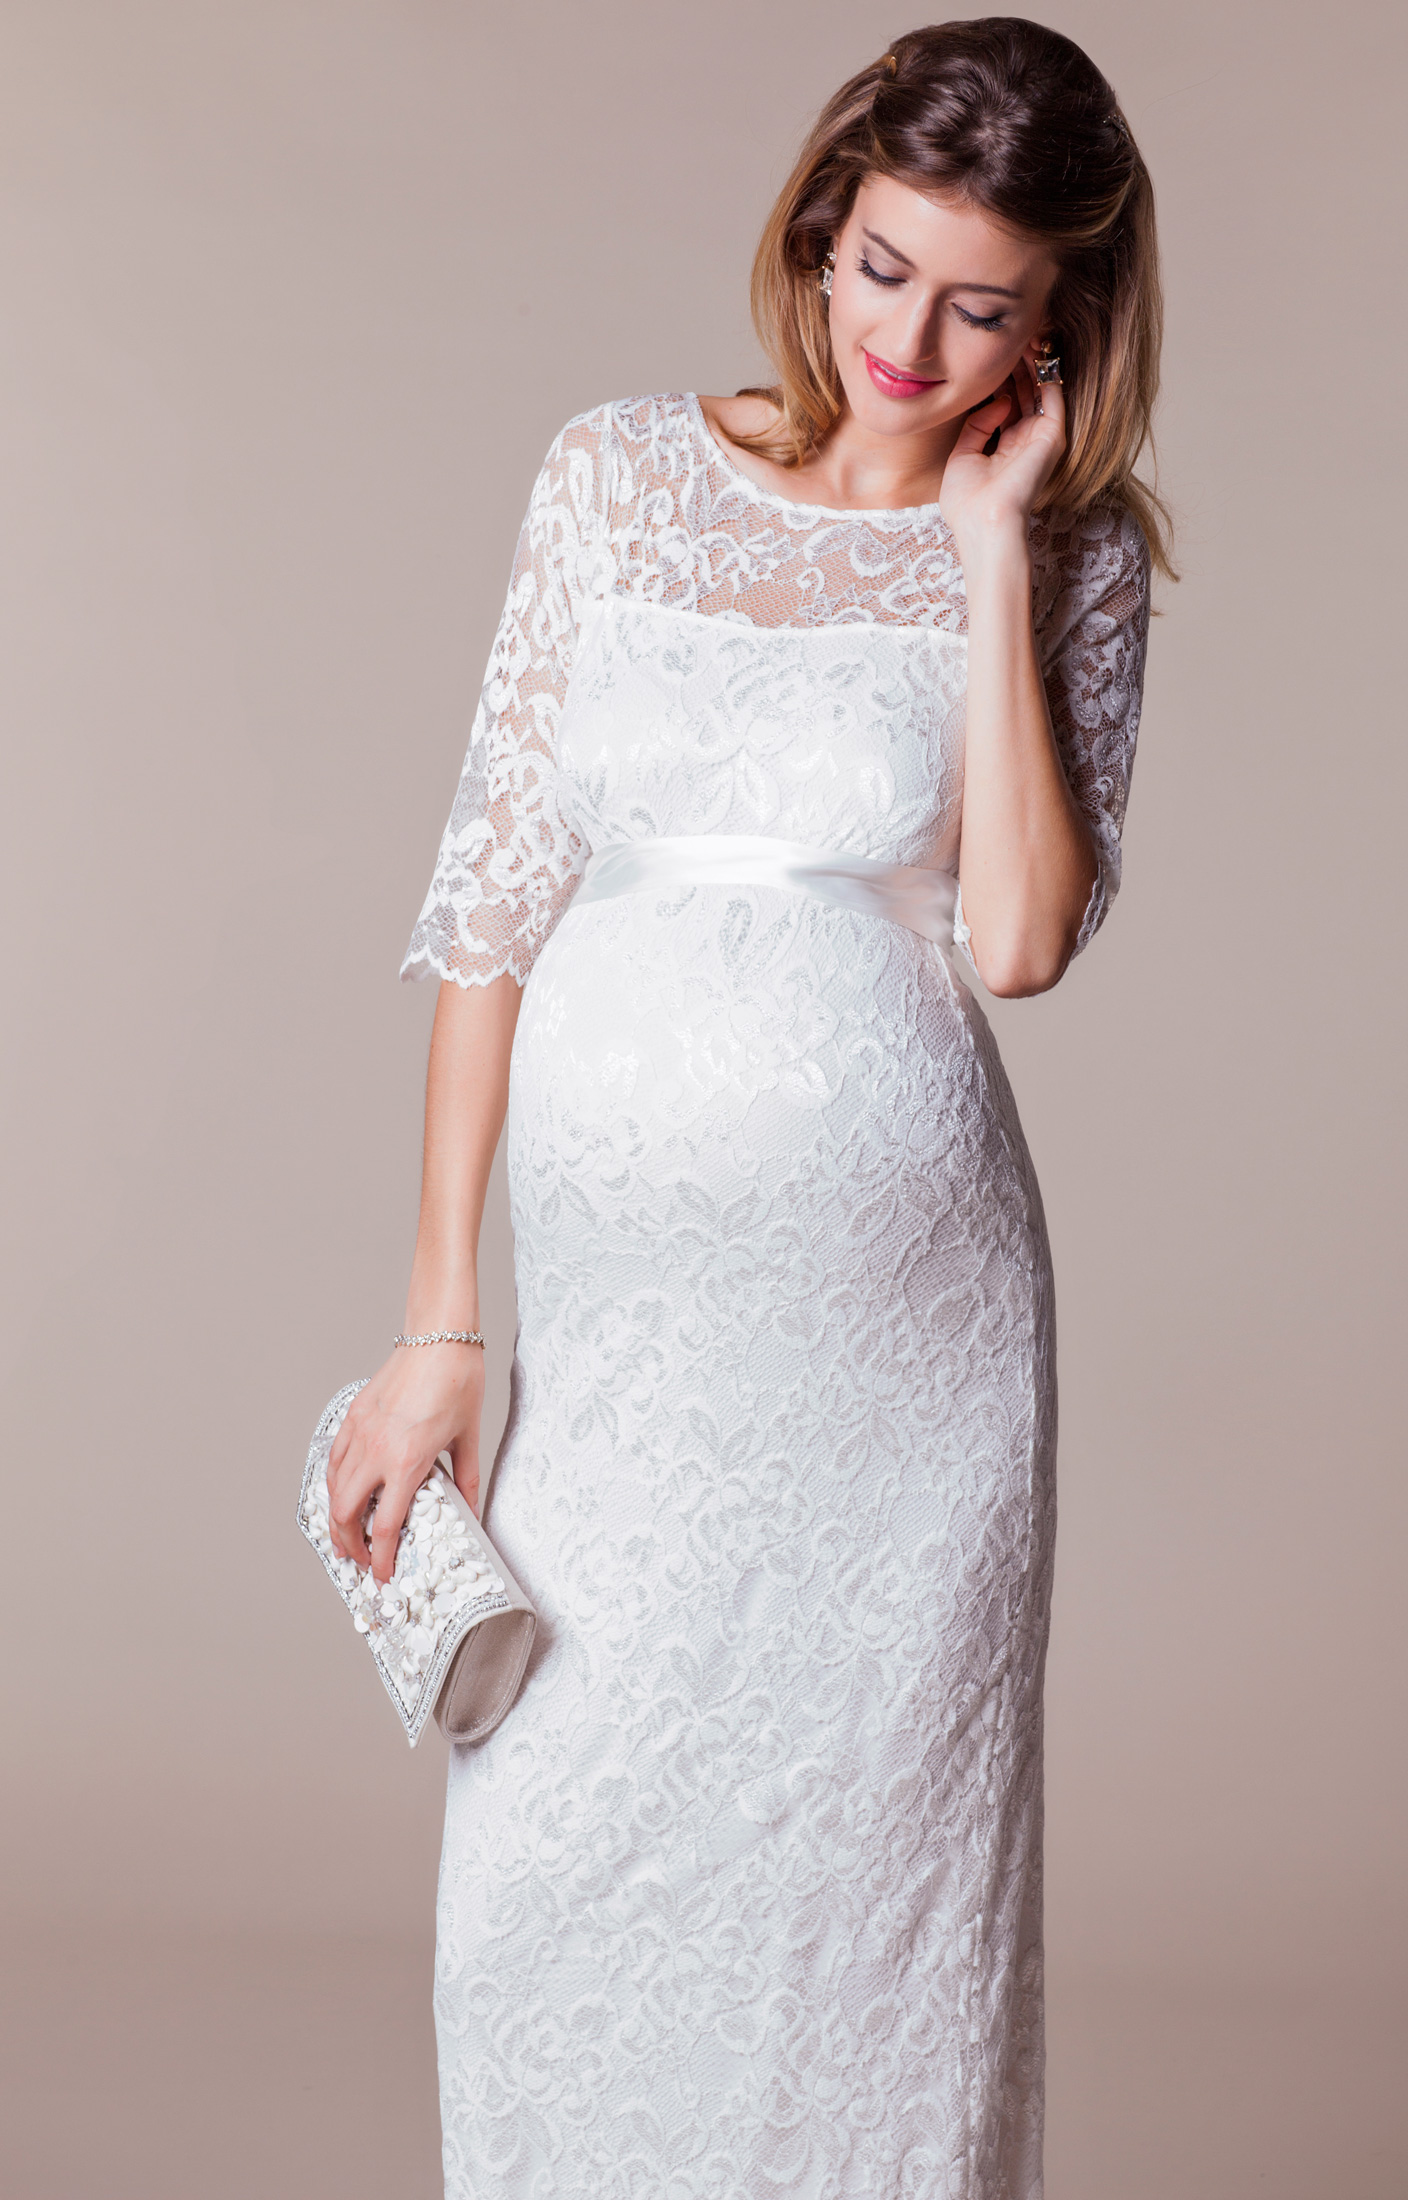 Amelia lace maternity wedding dress long ivory maternity amelia lace maternity wedding dress long ivory maternity wedding dresses evening wear and party clothes by tiffany rose ombrellifo Choice Image